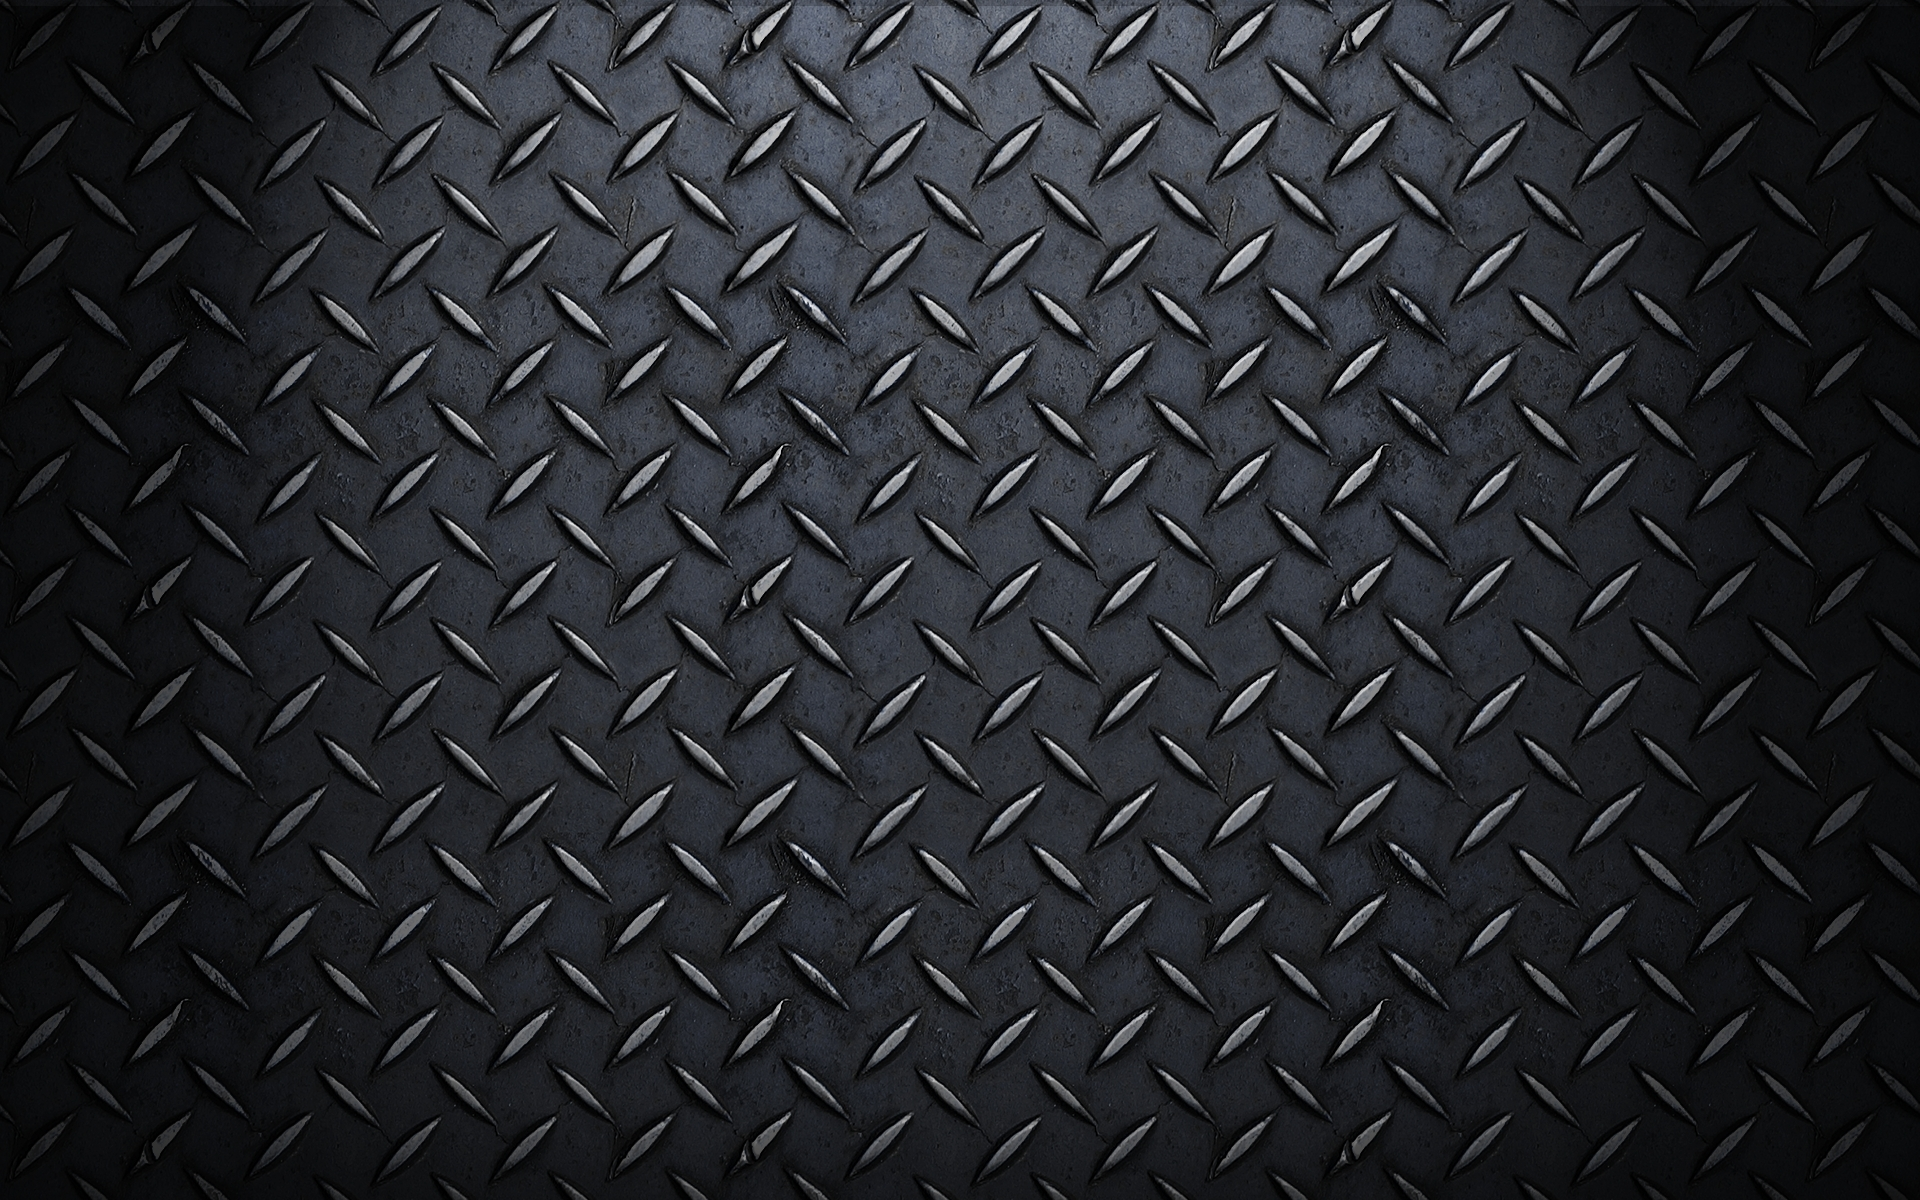 Metals Wallpaper